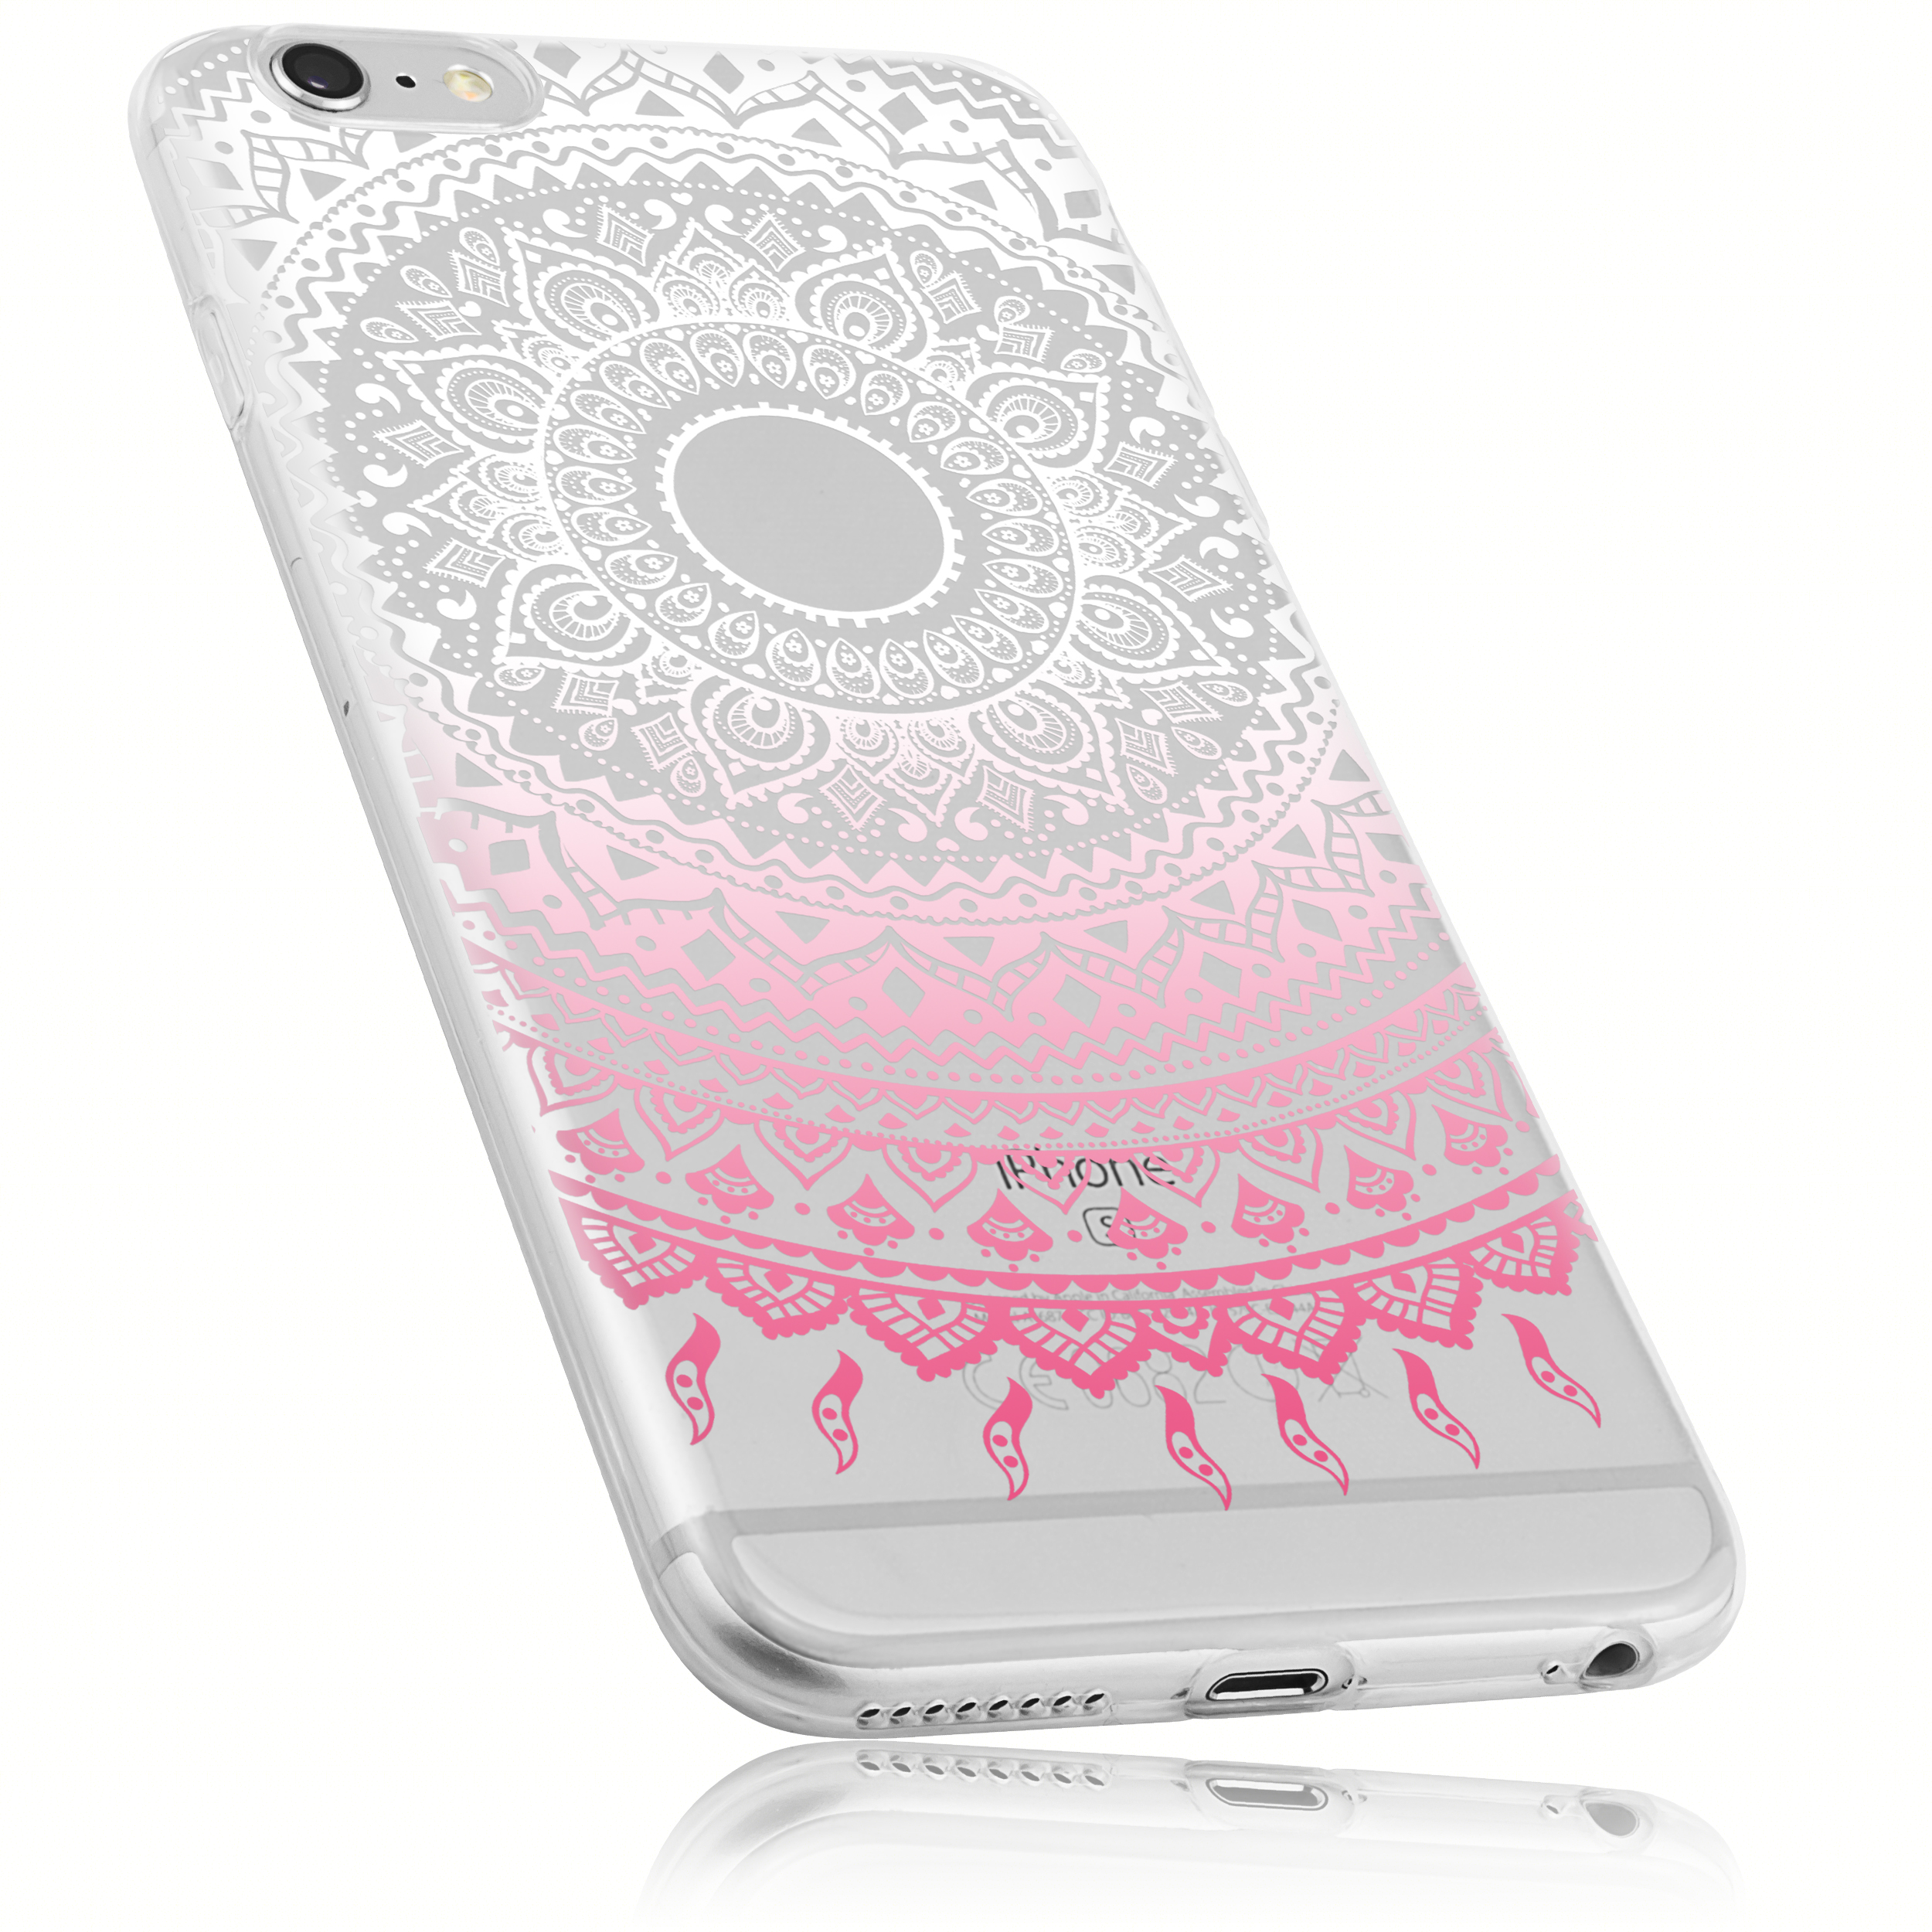 mumbi TPU Hülle Mandala transparent weiß rosa für Apple iPhone 6 iPhone 6s